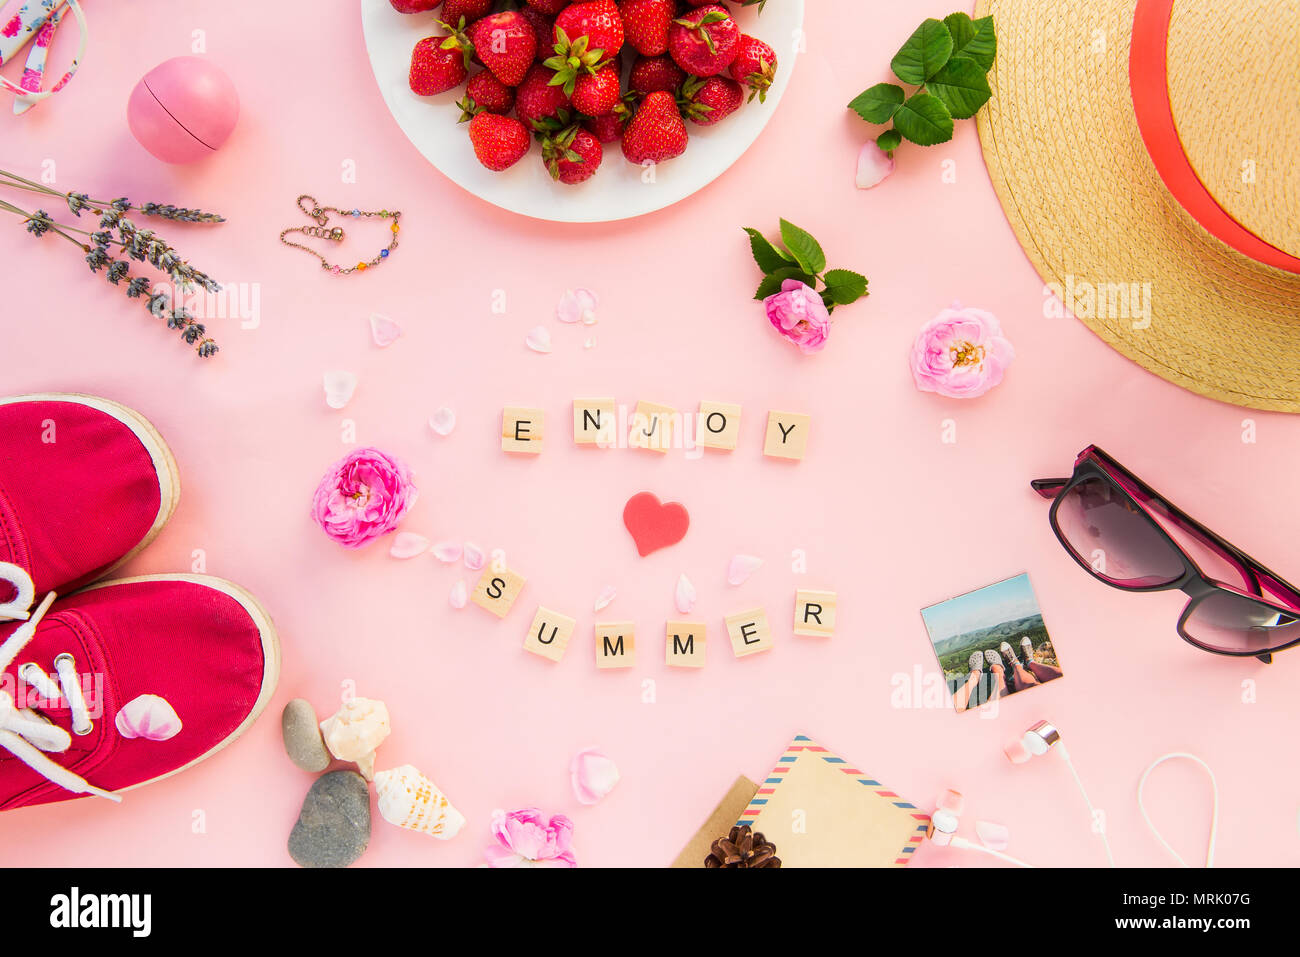 Female summer vacation planning concept accessories clothing female summer vacation planning concept accessories clothing flowers and strawberries on pink background enjoy summer lettering bright mood deta mightylinksfo